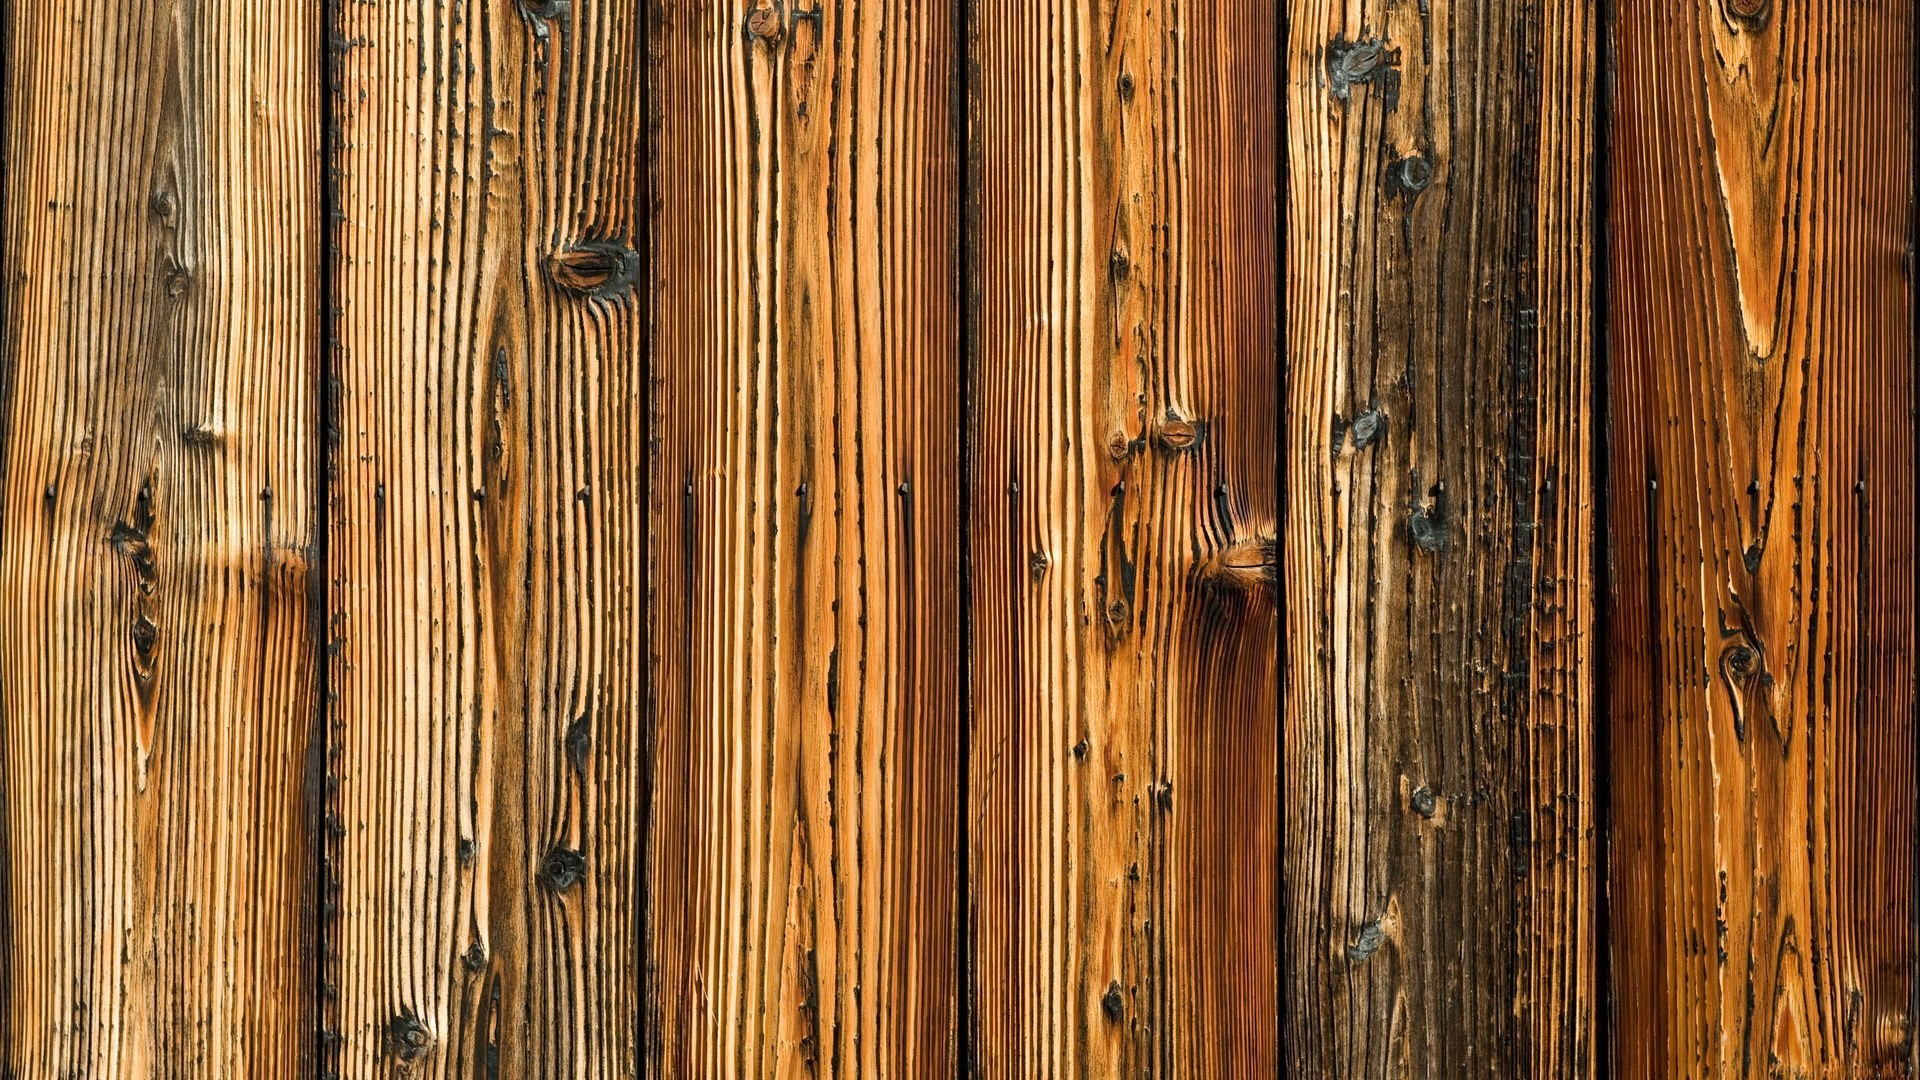 Wood Grain hd wallpaper download